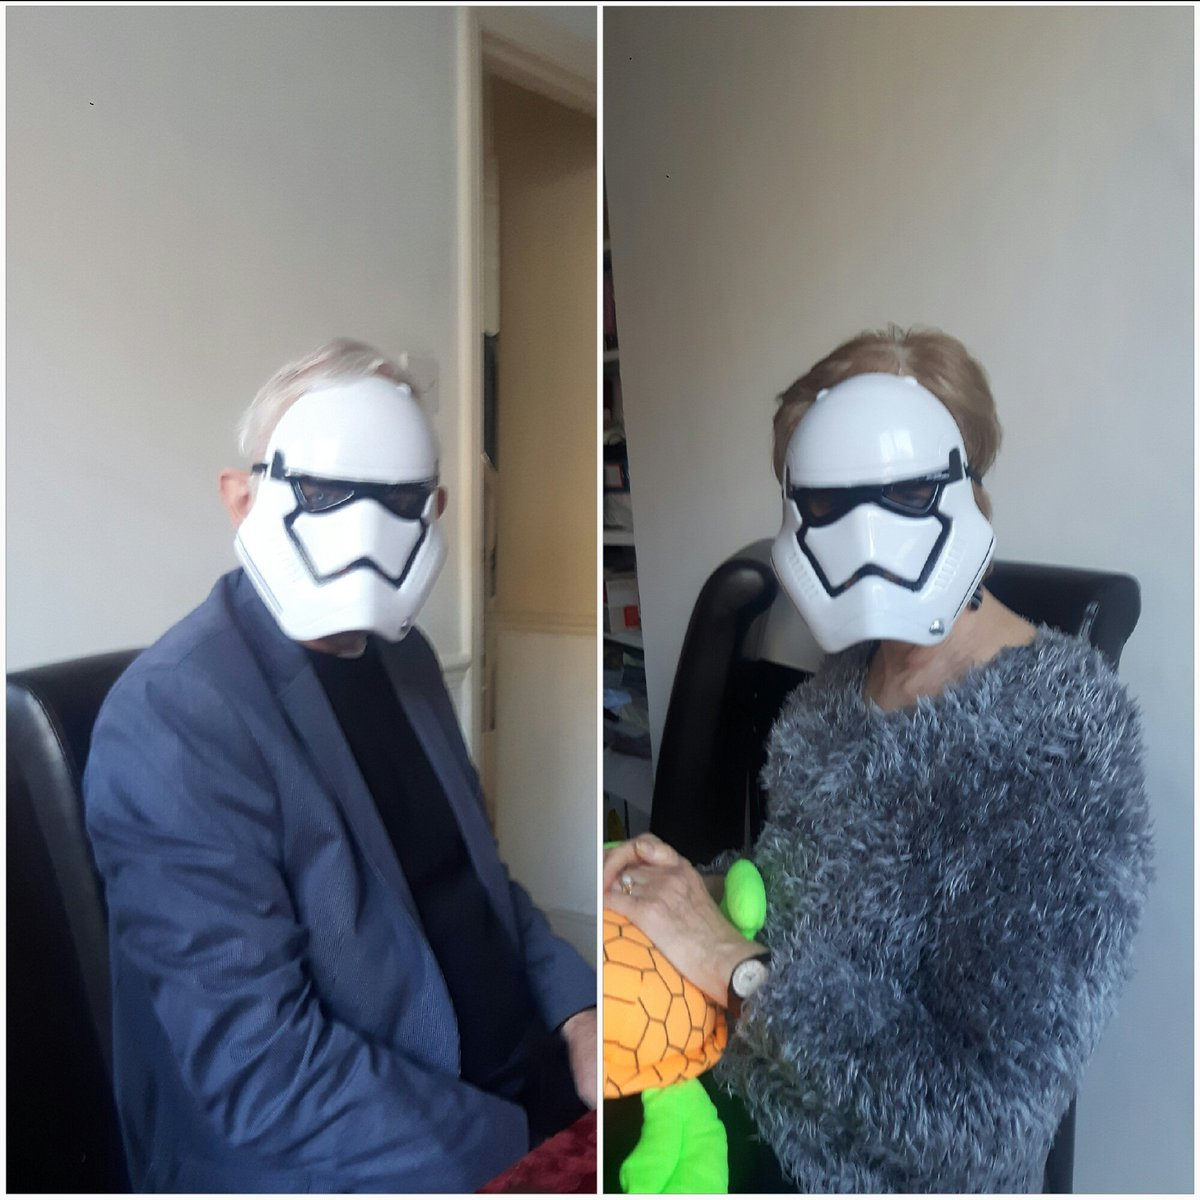 The force is strong in my parents... #StarWars #stormtrooper <br>http://pic.twitter.com/LR8wQNkvzX